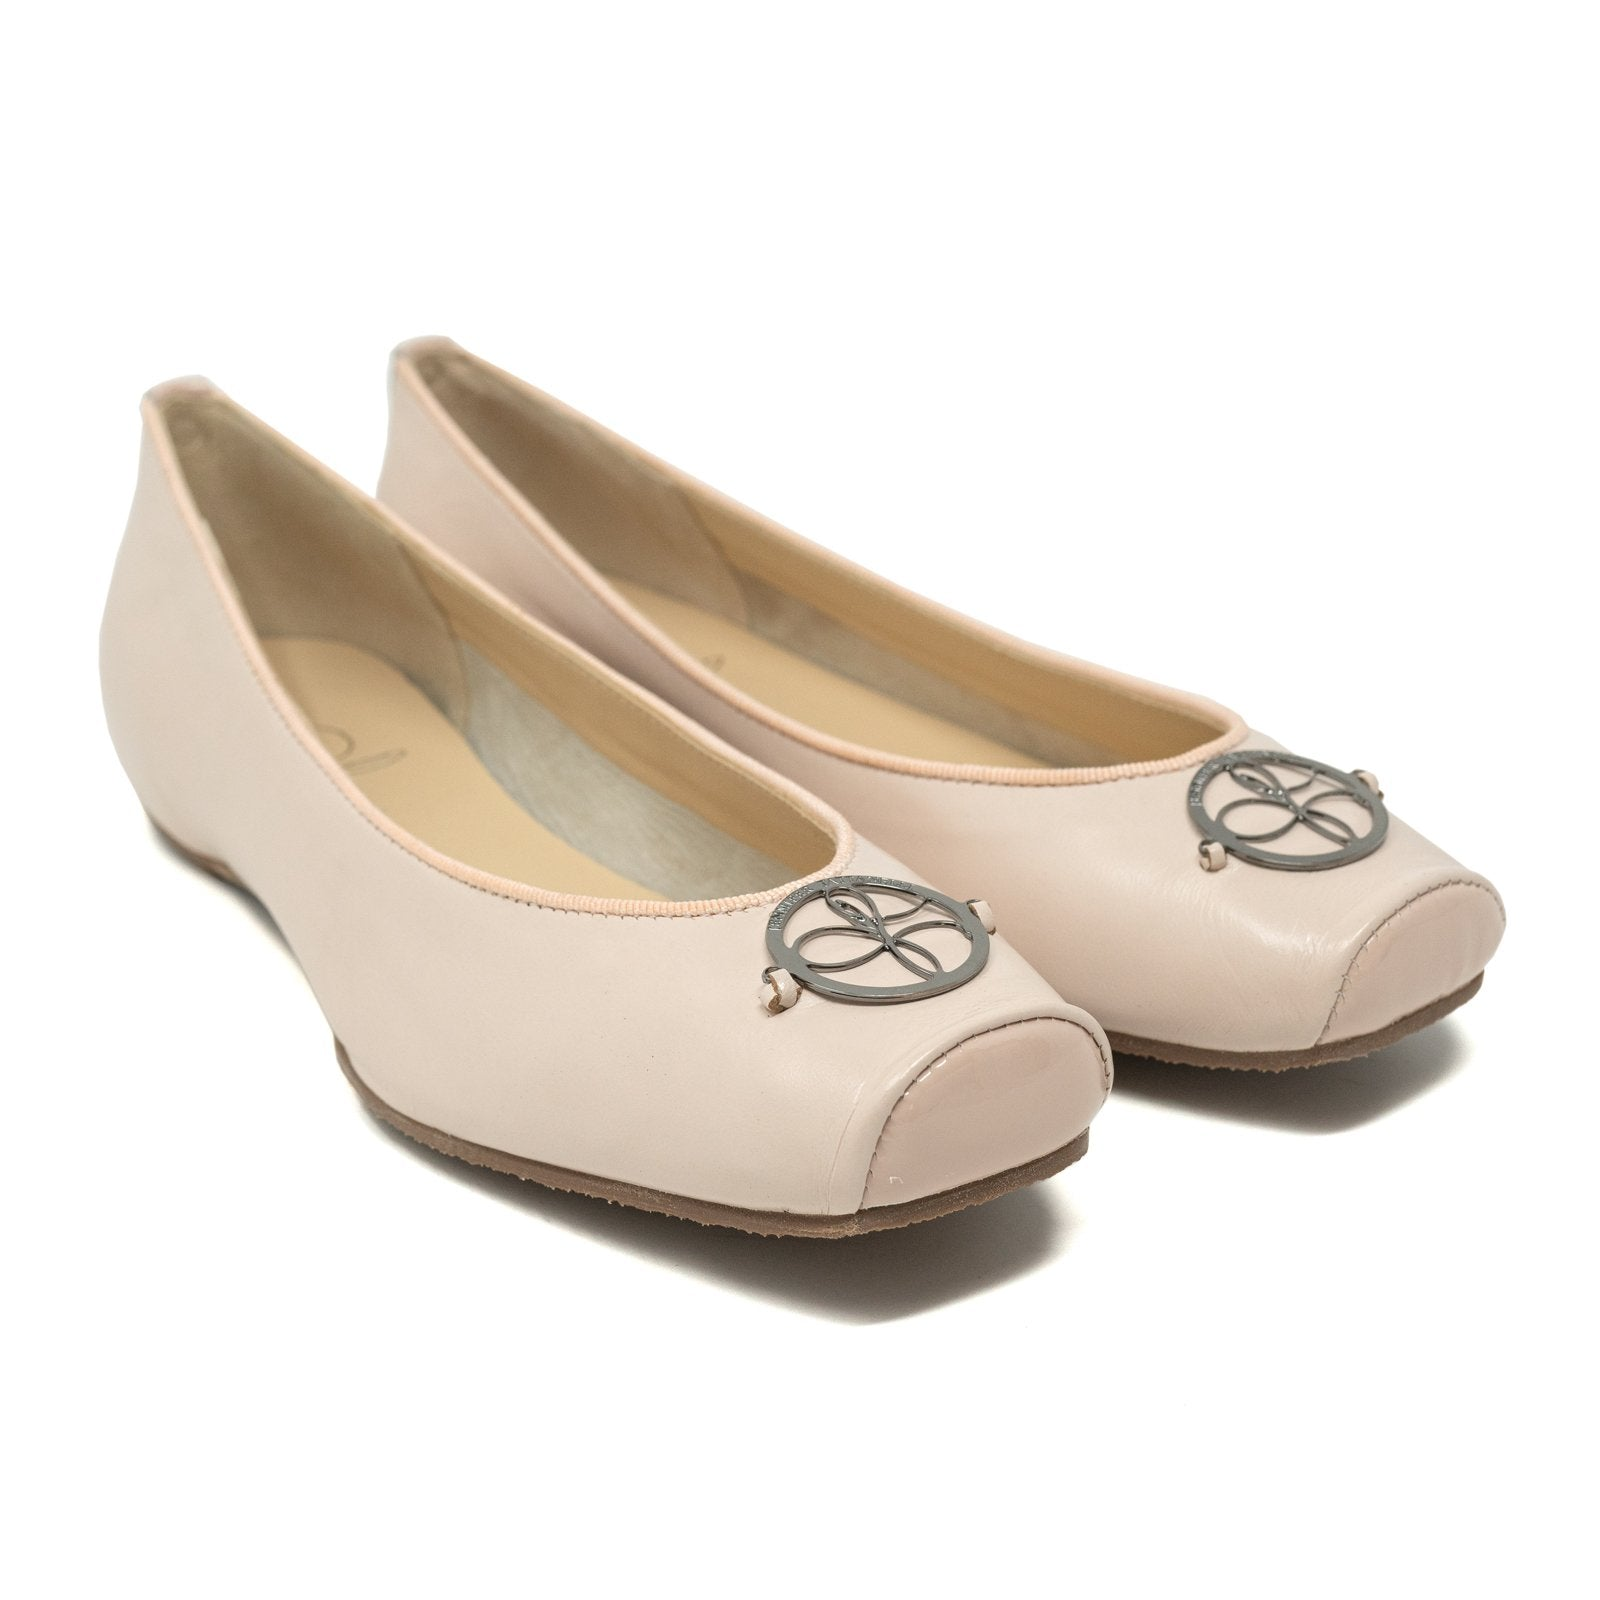 Women Ballerina Shoes with hidden heel in Nappa Nude - Jennifer Tattanelli